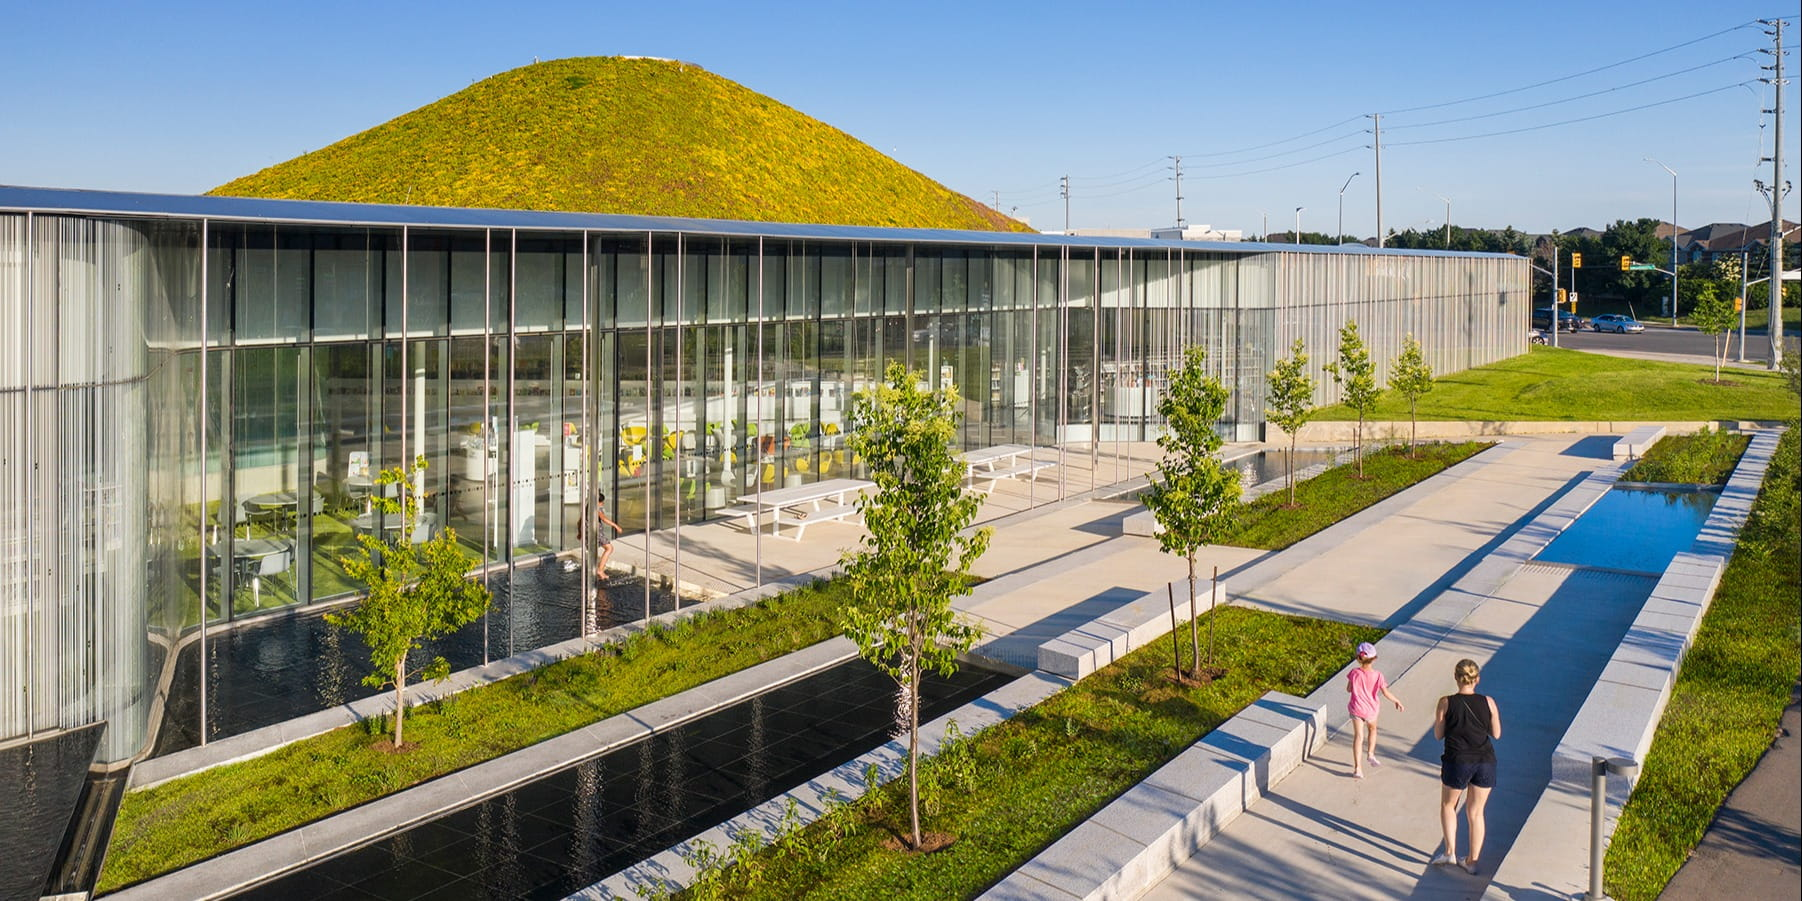 RDHA merges new public library within the landscape and community of Brampton